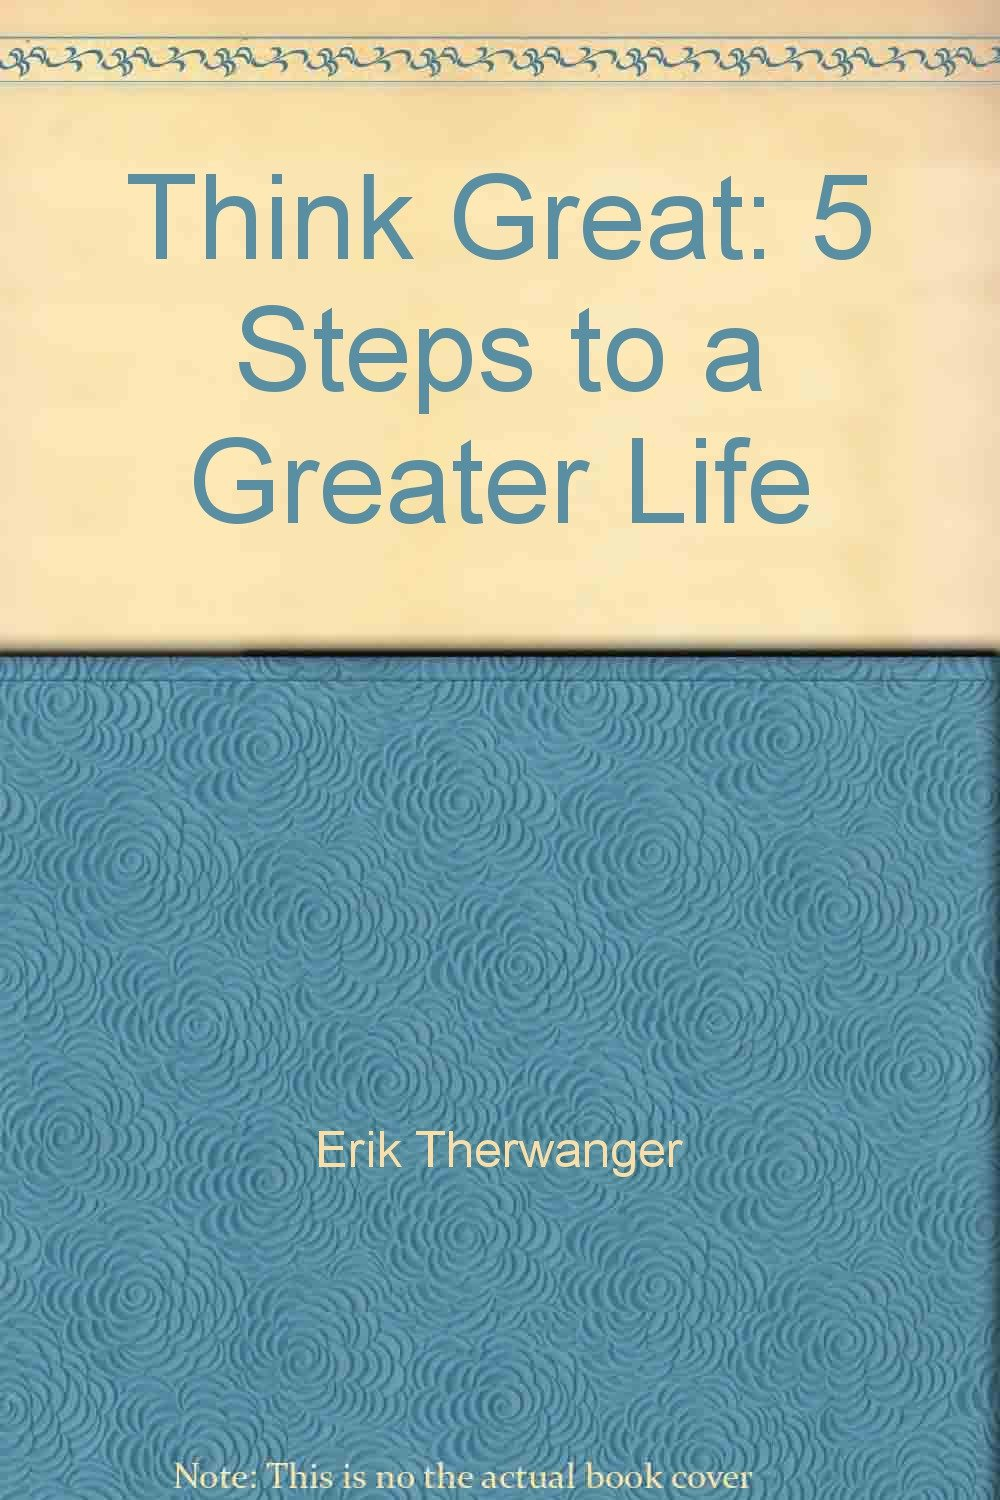 Think Great: 5 Steps to a Greater Life: Erik Therwanger